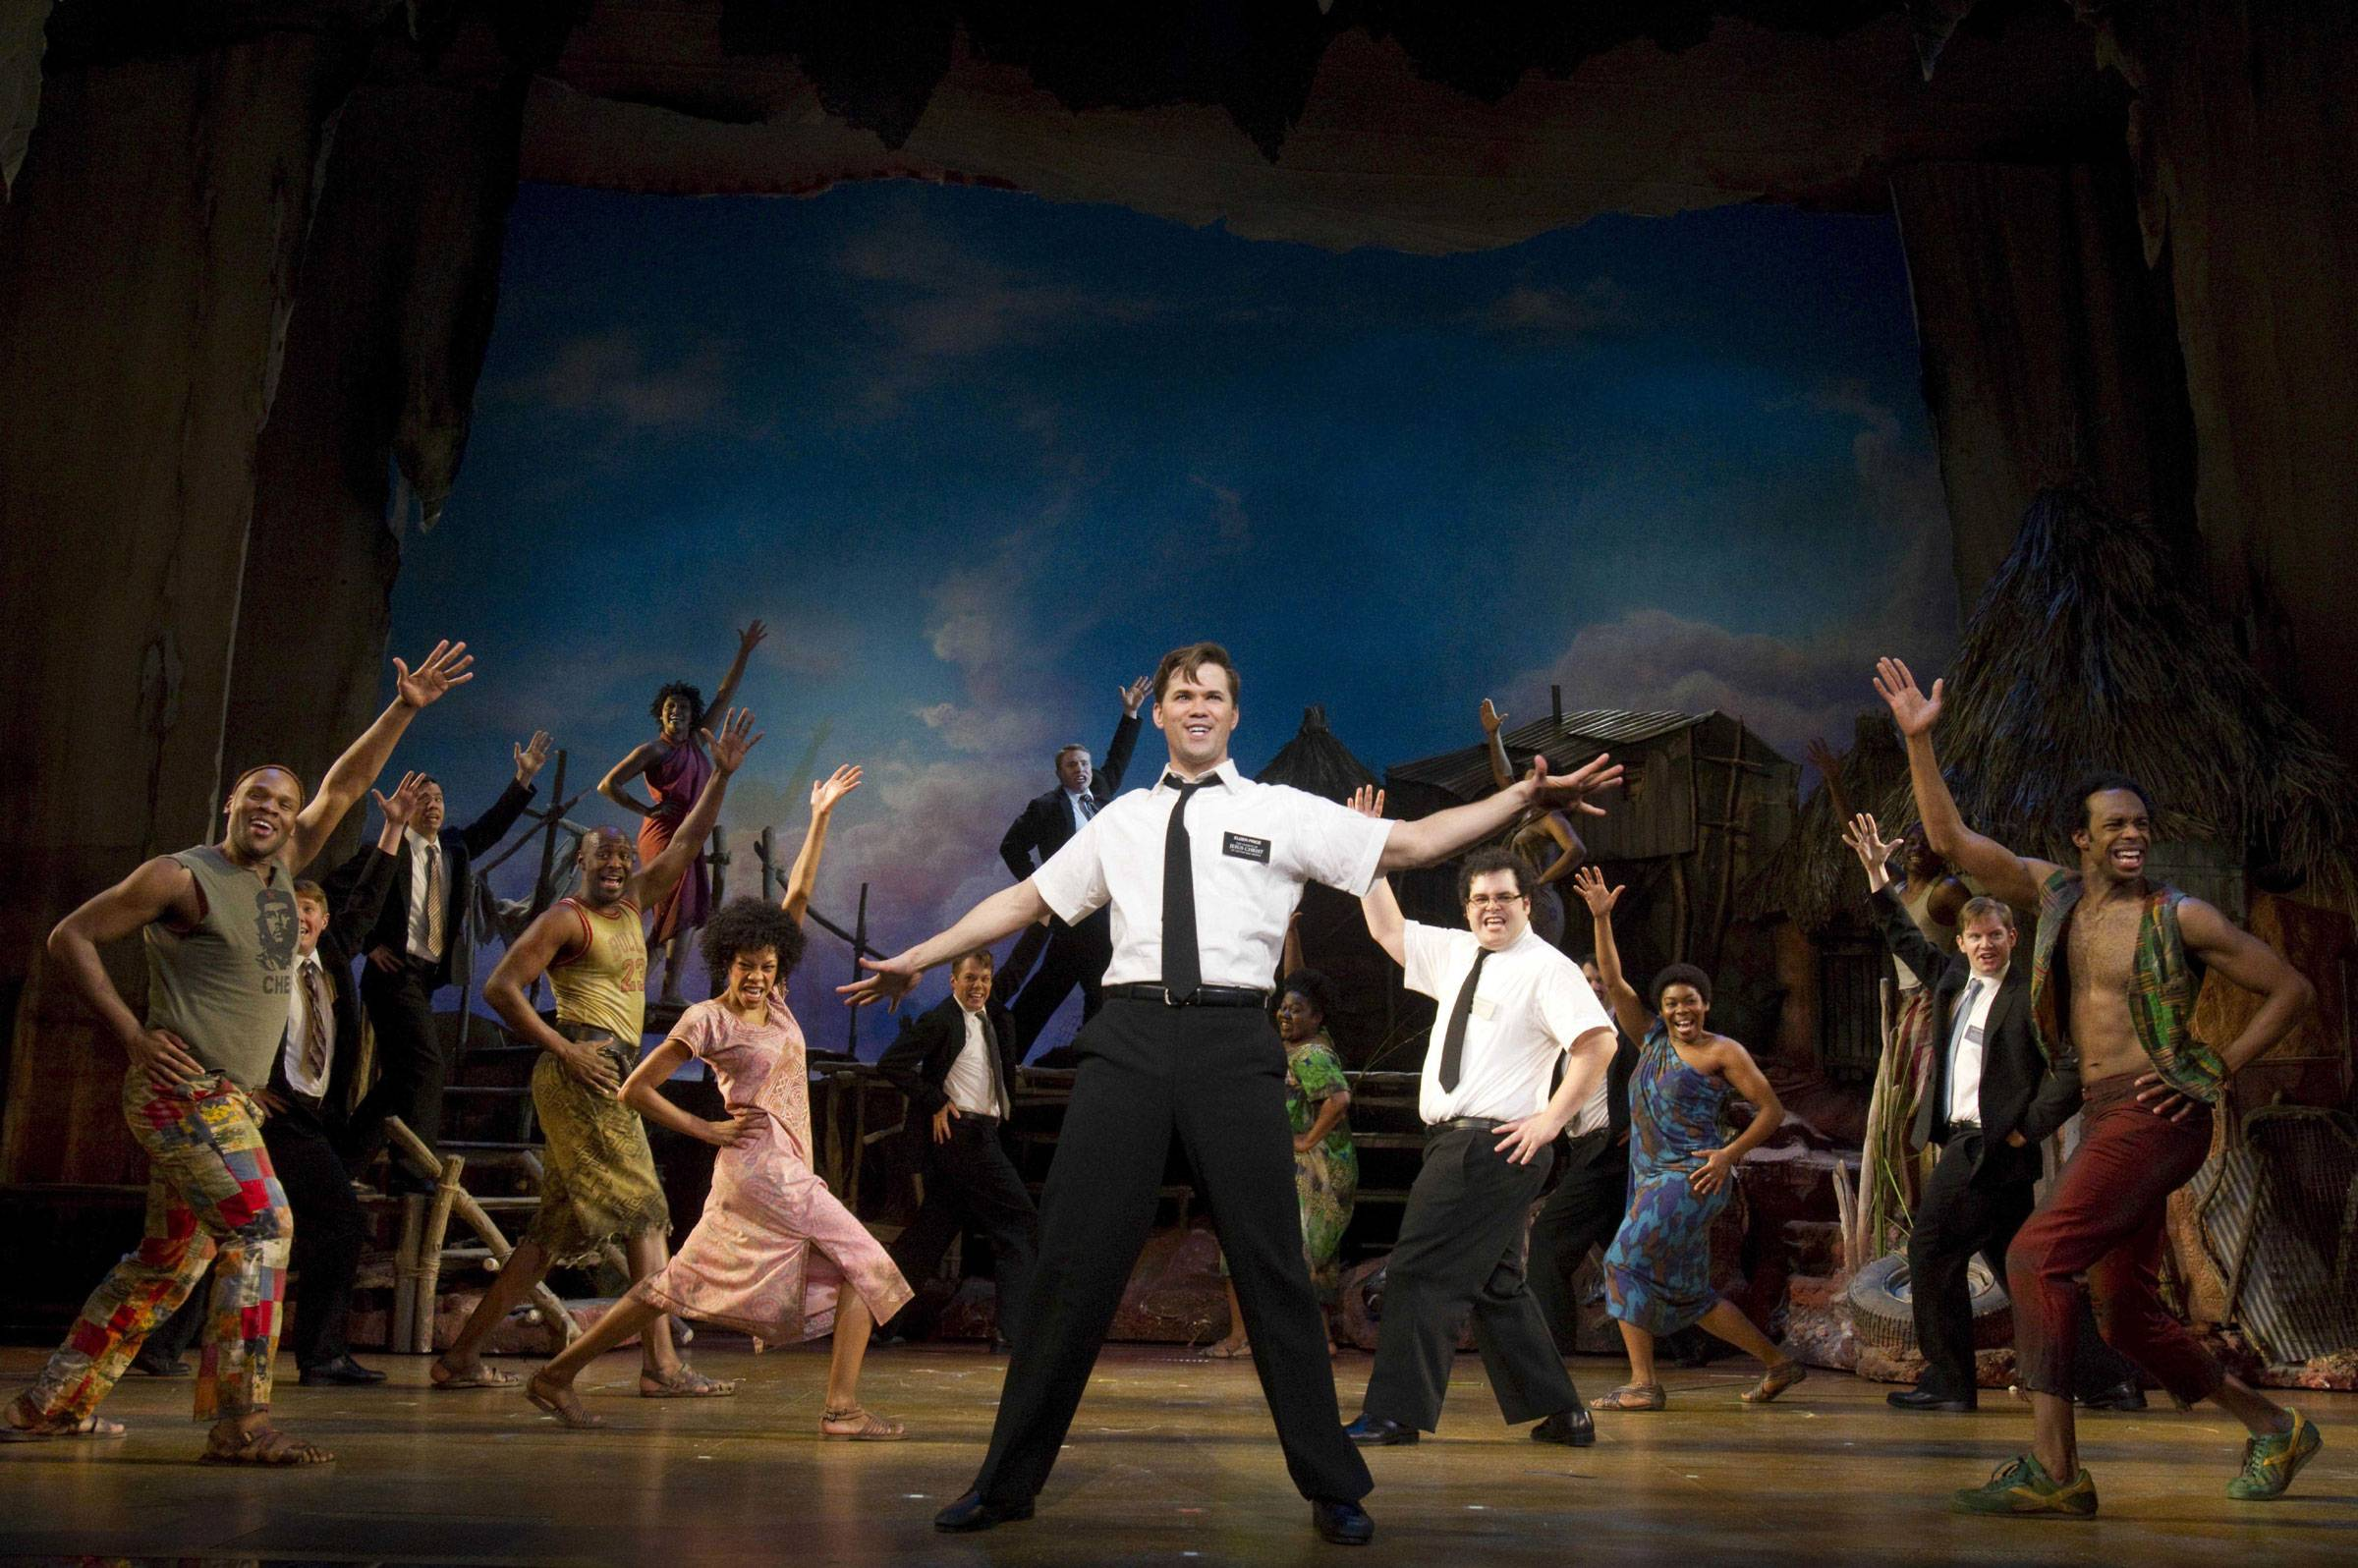 'Book of Mormon' aims for long Chicago run